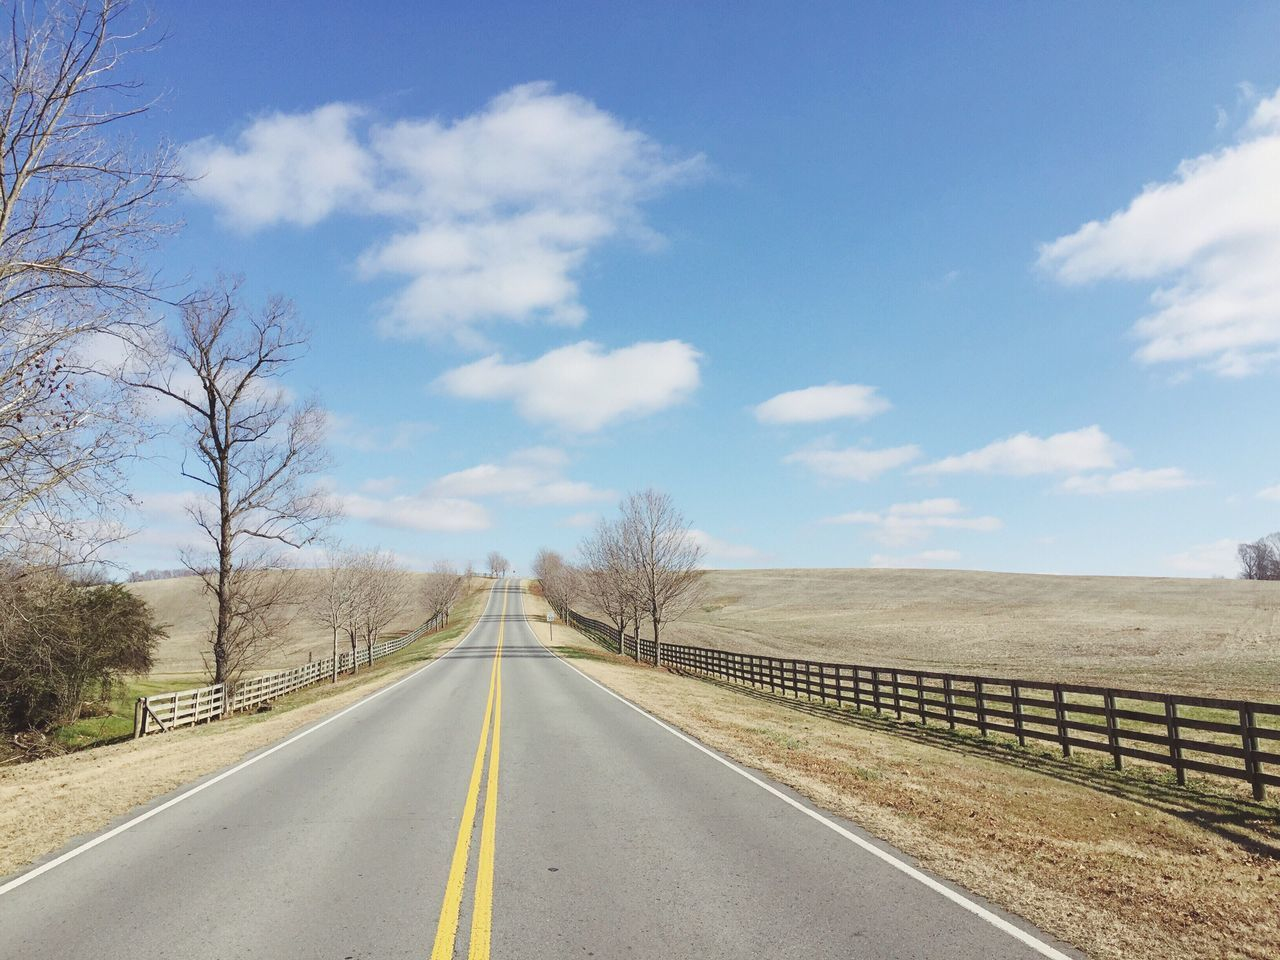 Road The Way Forward Sky Day Transportation Outdoors No People Landscape Cloud - Sky Scenics Nature Beauty In Nature Tranquility Winter Rural America Rural Scene Bare Tree Farmland Fence Tranquil Scene EyeEm Best Shots Country Road